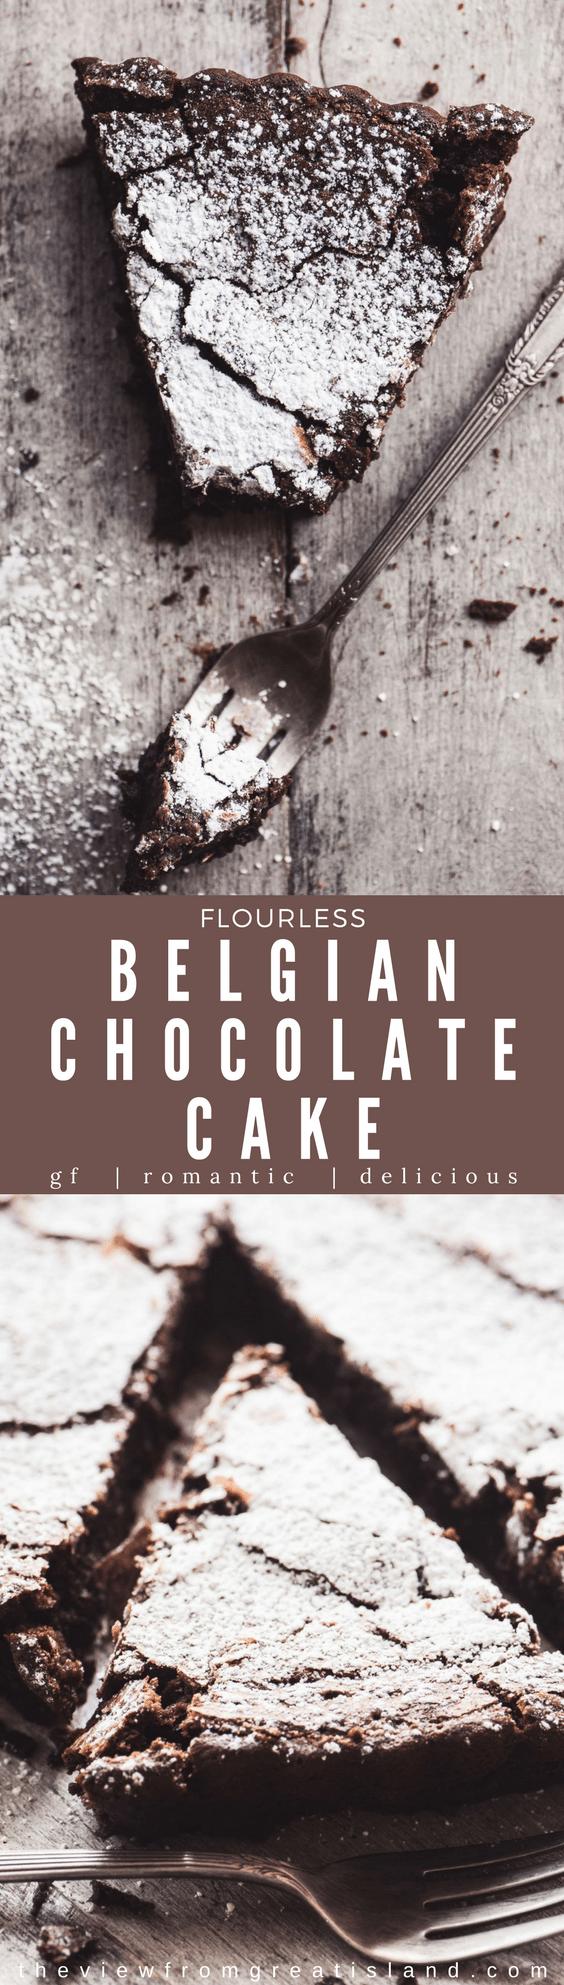 This Flourless Belgian Chocolate Cake is a chocolate lovers dream, and everybody needs a great gluten free chocolate dessert in their recipe repertoire. #dessert #glutenfree #chocolate #cake #chocolatetart #glutenfreecake #bestflourlesschocolatecake #bestchocolatecake #darkchocolate #almondflour #belgiancake #flourlesscake